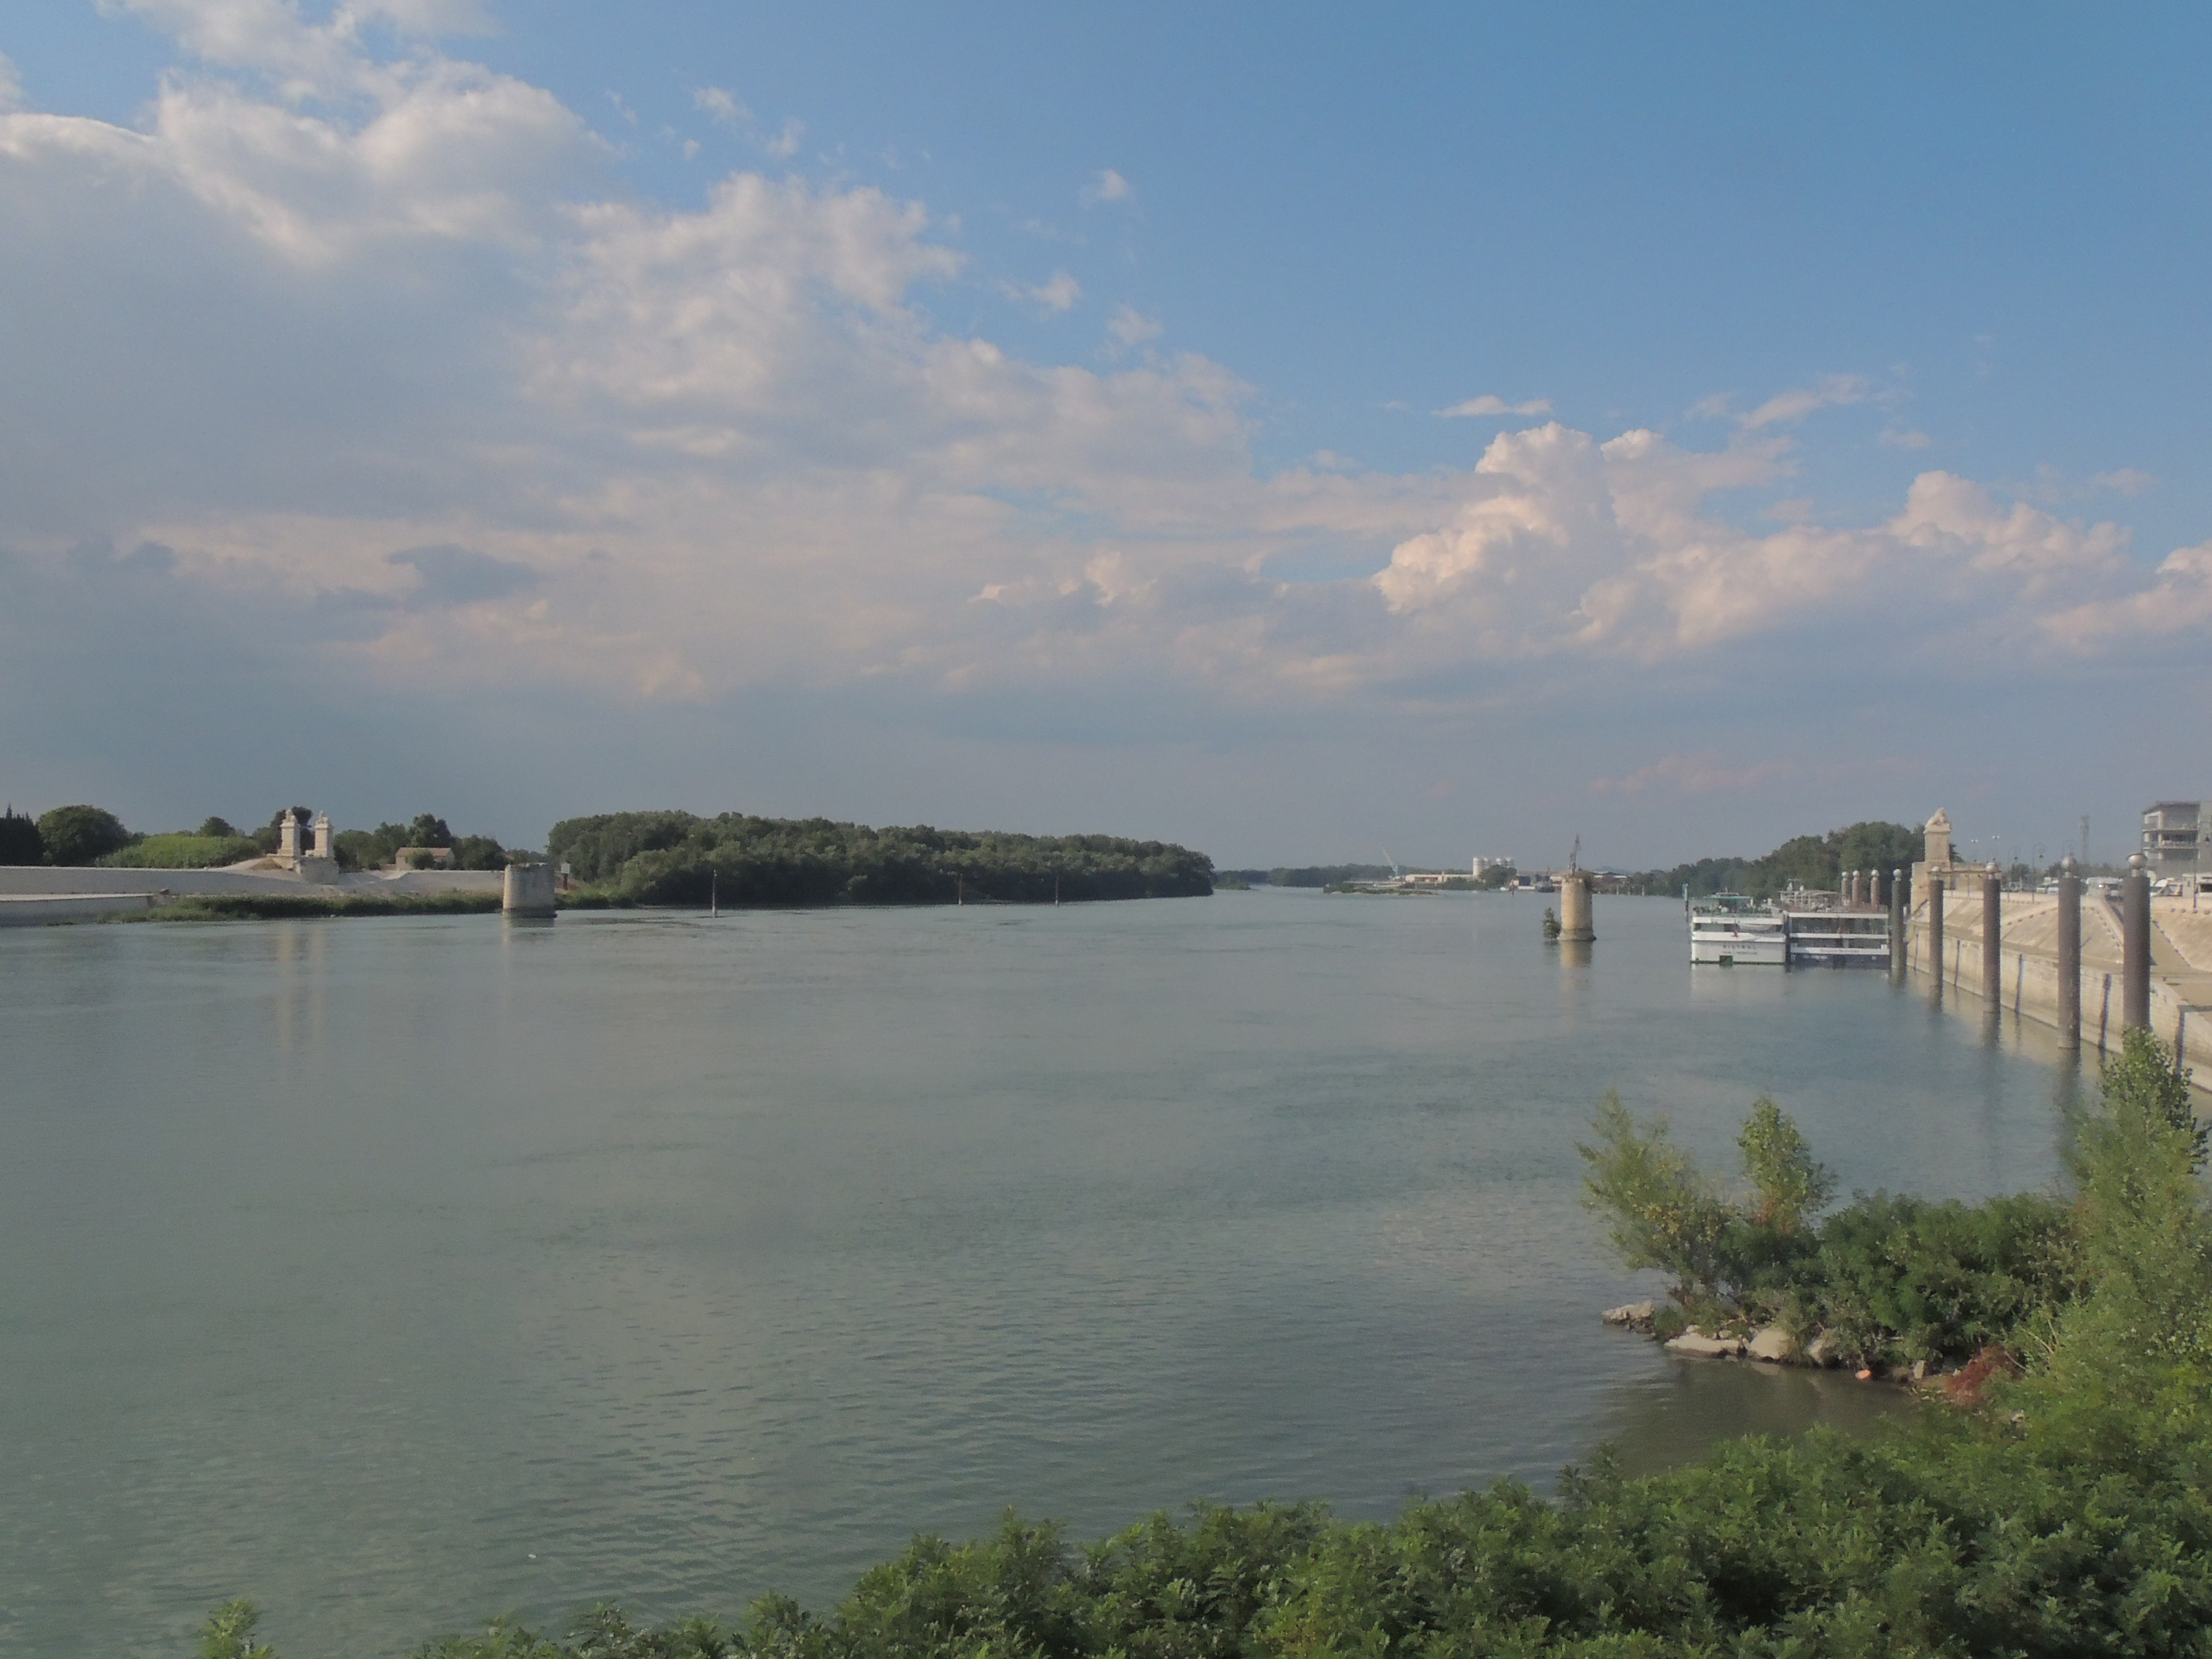 The site of Starry Night Over the Rhone